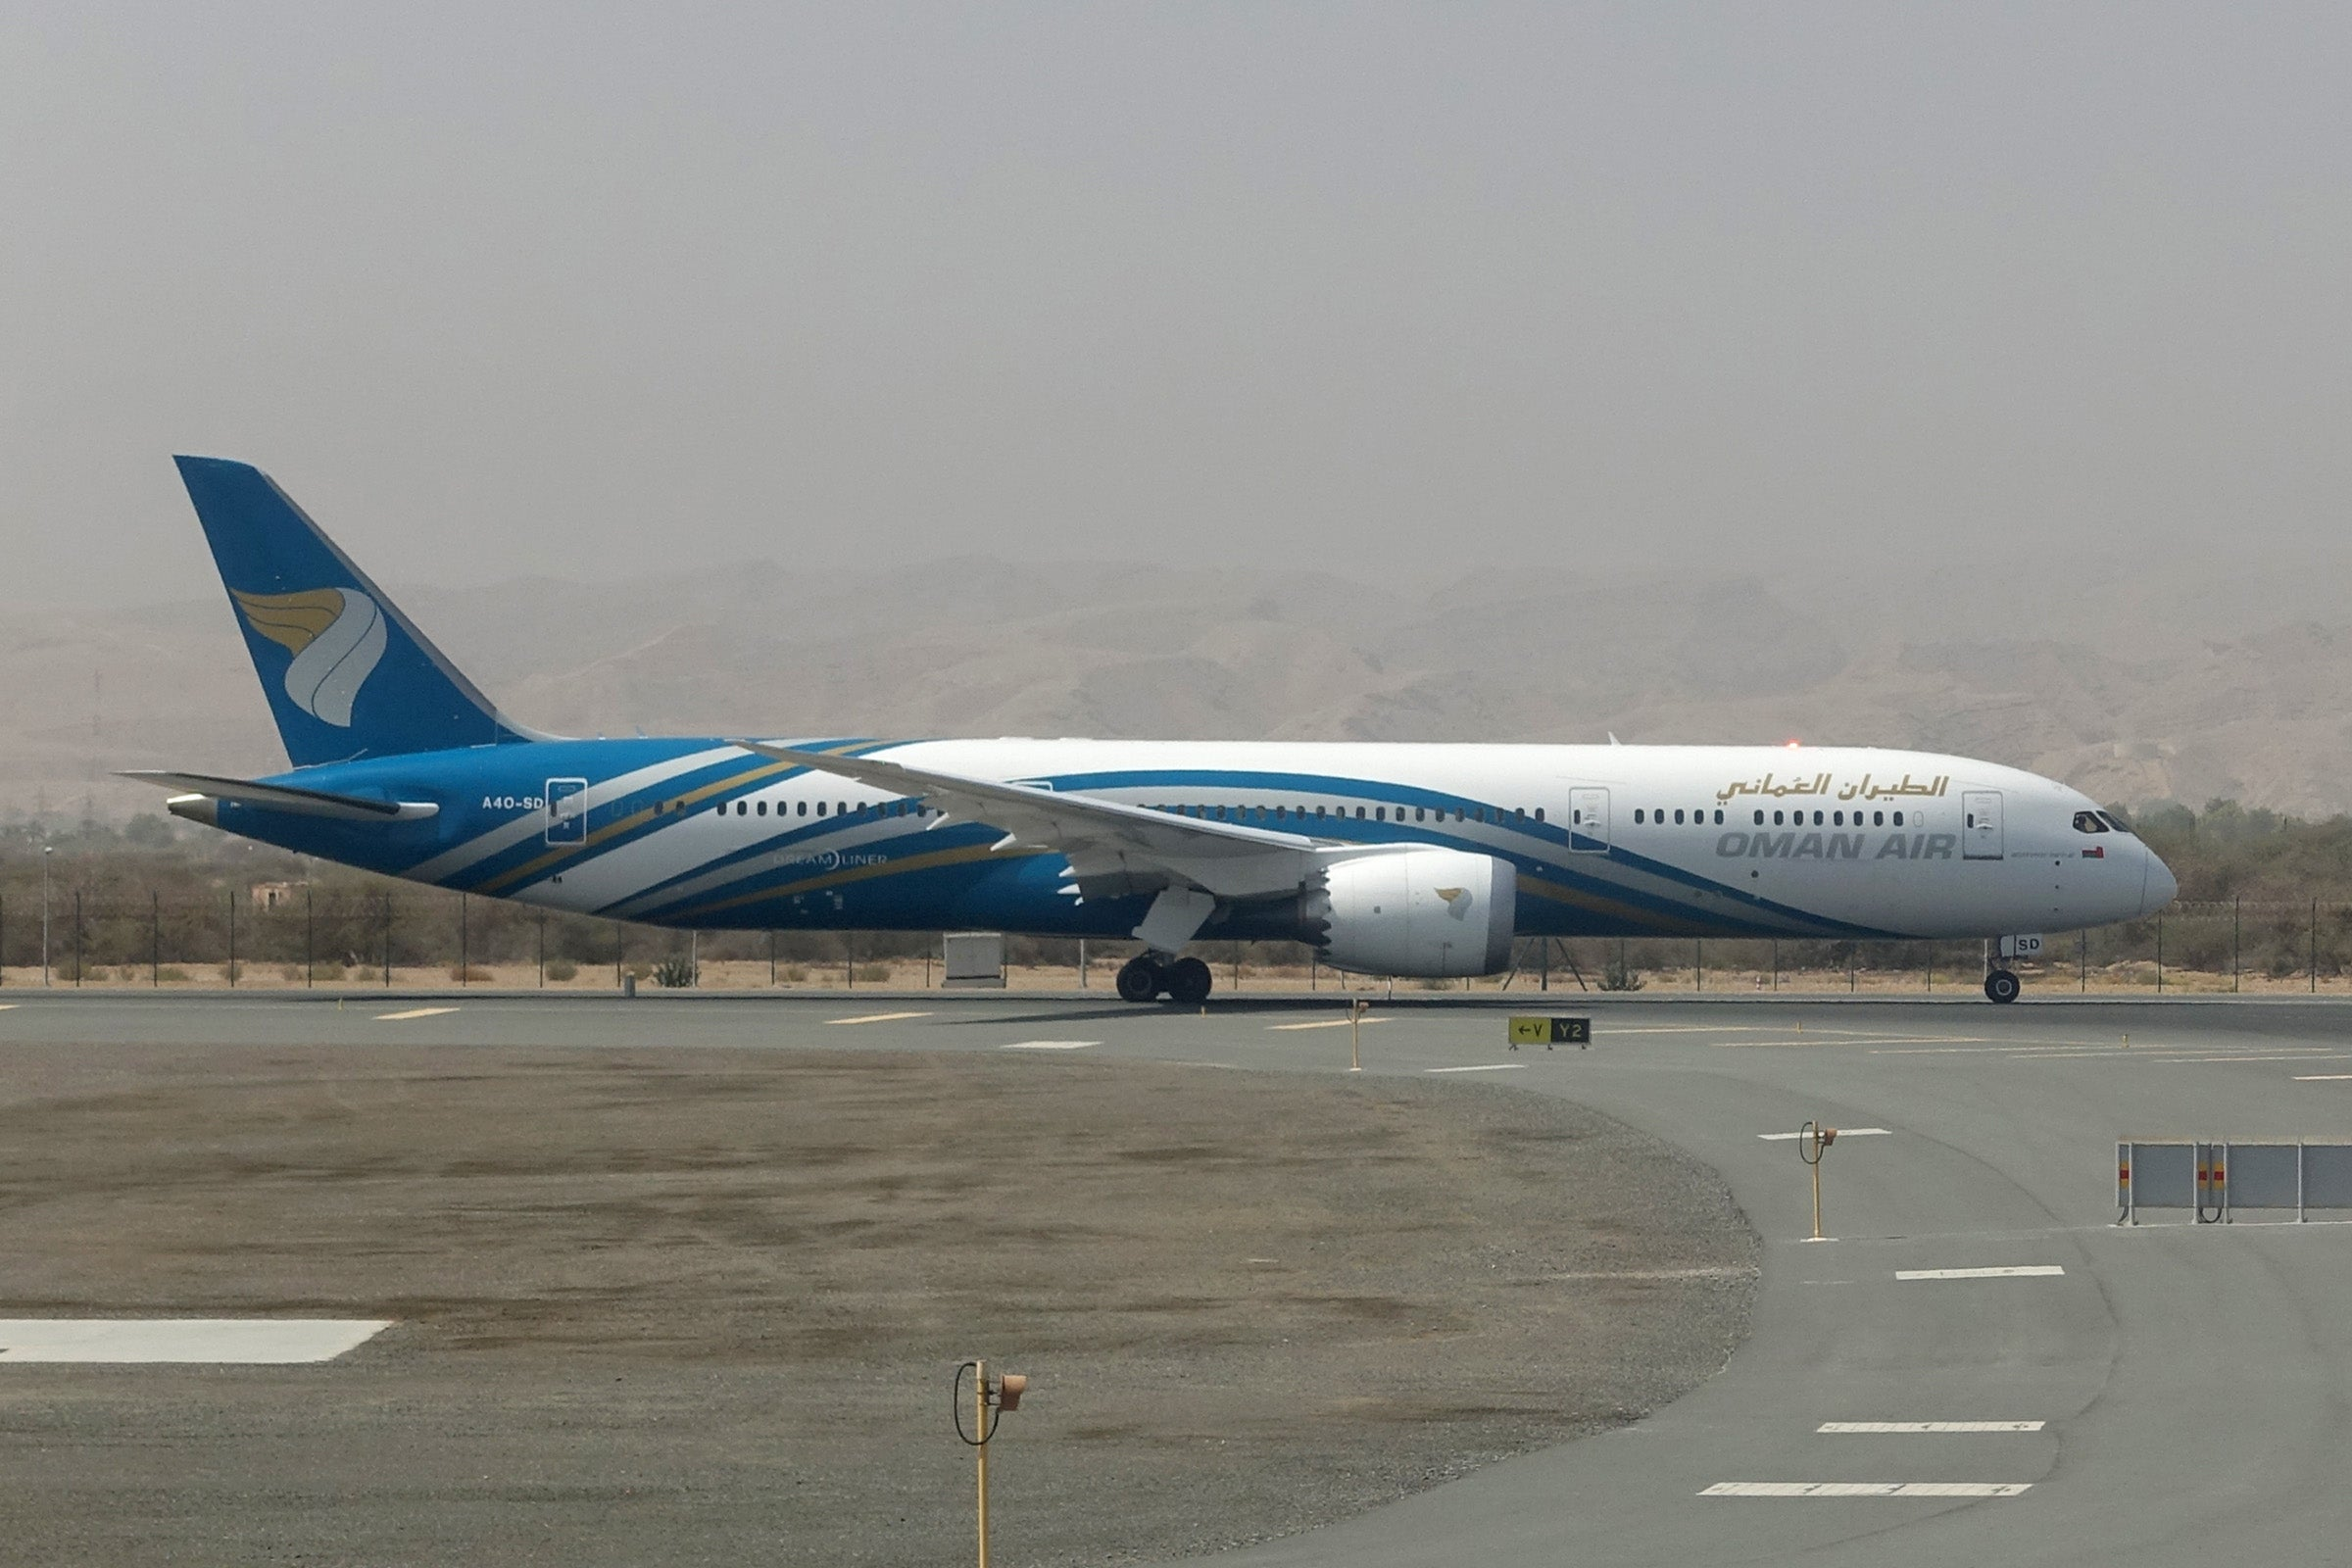 oman air View the quality ratings for oman air onboard products, food & beverages and staff service, and the ground service standards for oman air.